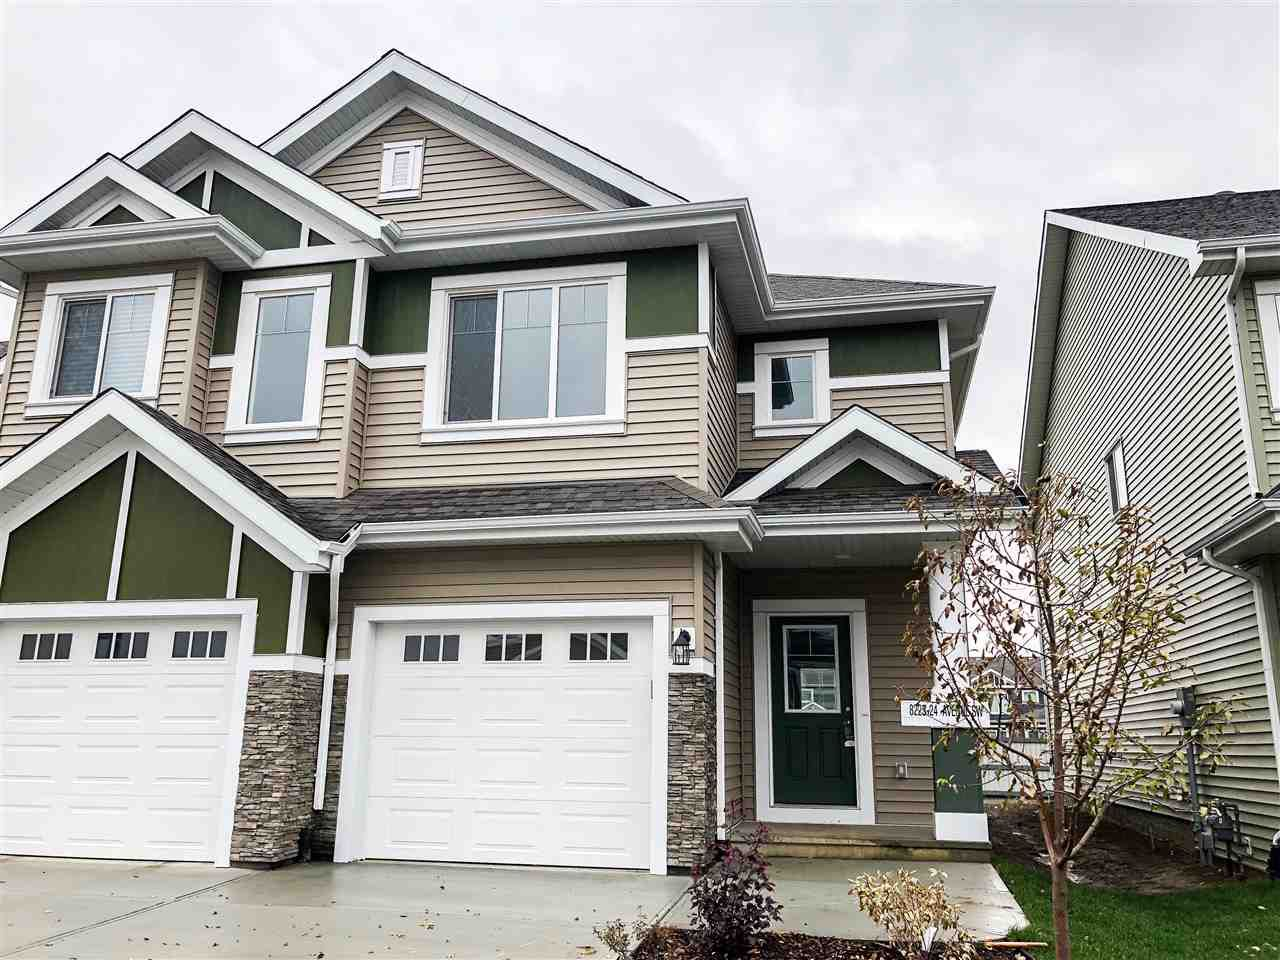 Main Photo: 8225 24 Street in Edmonton: Zone 53 Attached Home for sale : MLS®# E4137086